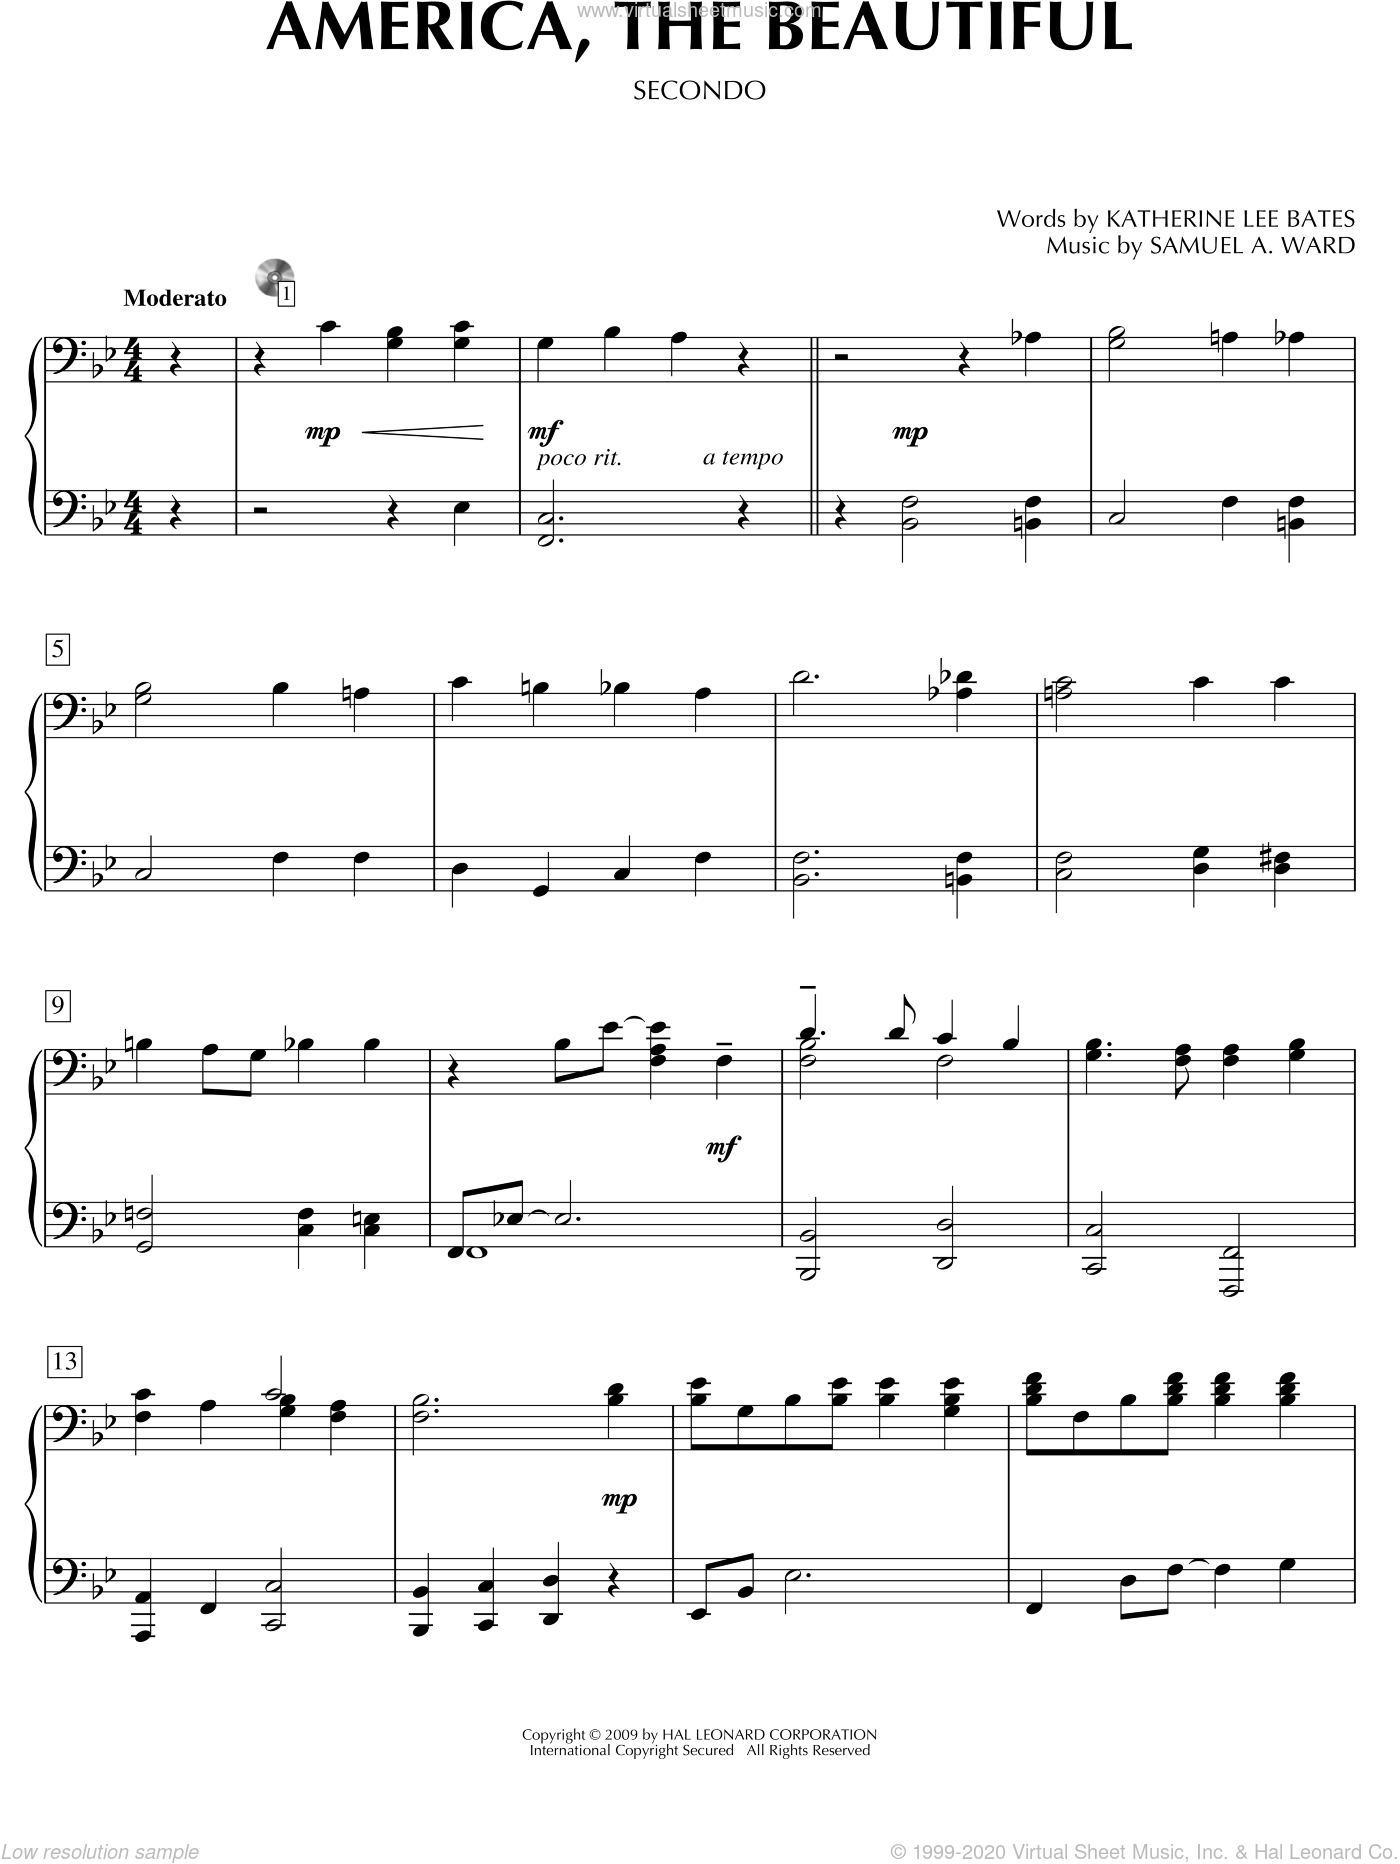 America, The Beautiful sheet music for piano four hands by Katherine Lee Bates and Samuel Augustus Ward, intermediate